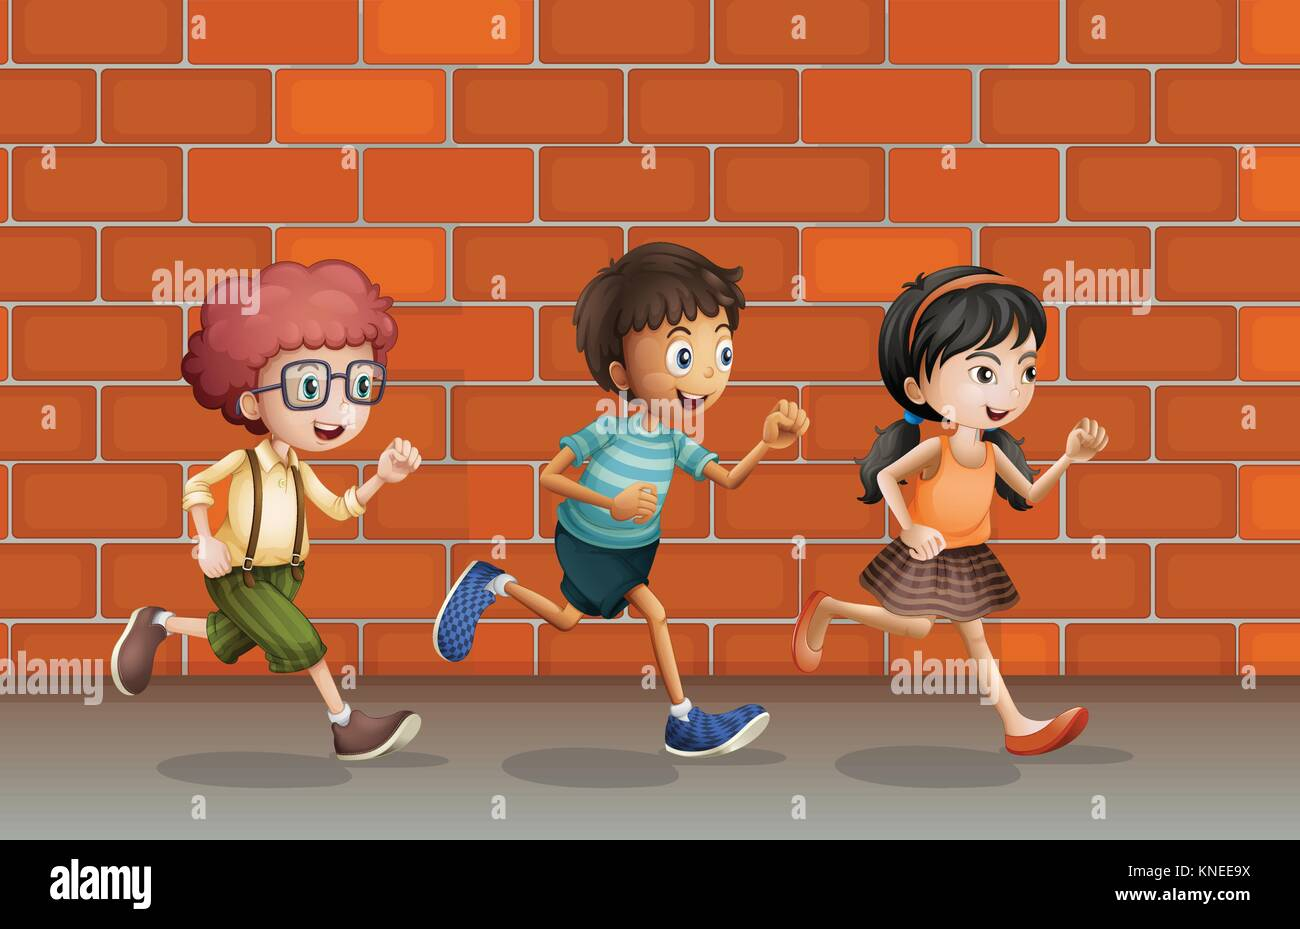 Illustration Of Kids Running Near A Brick Wall